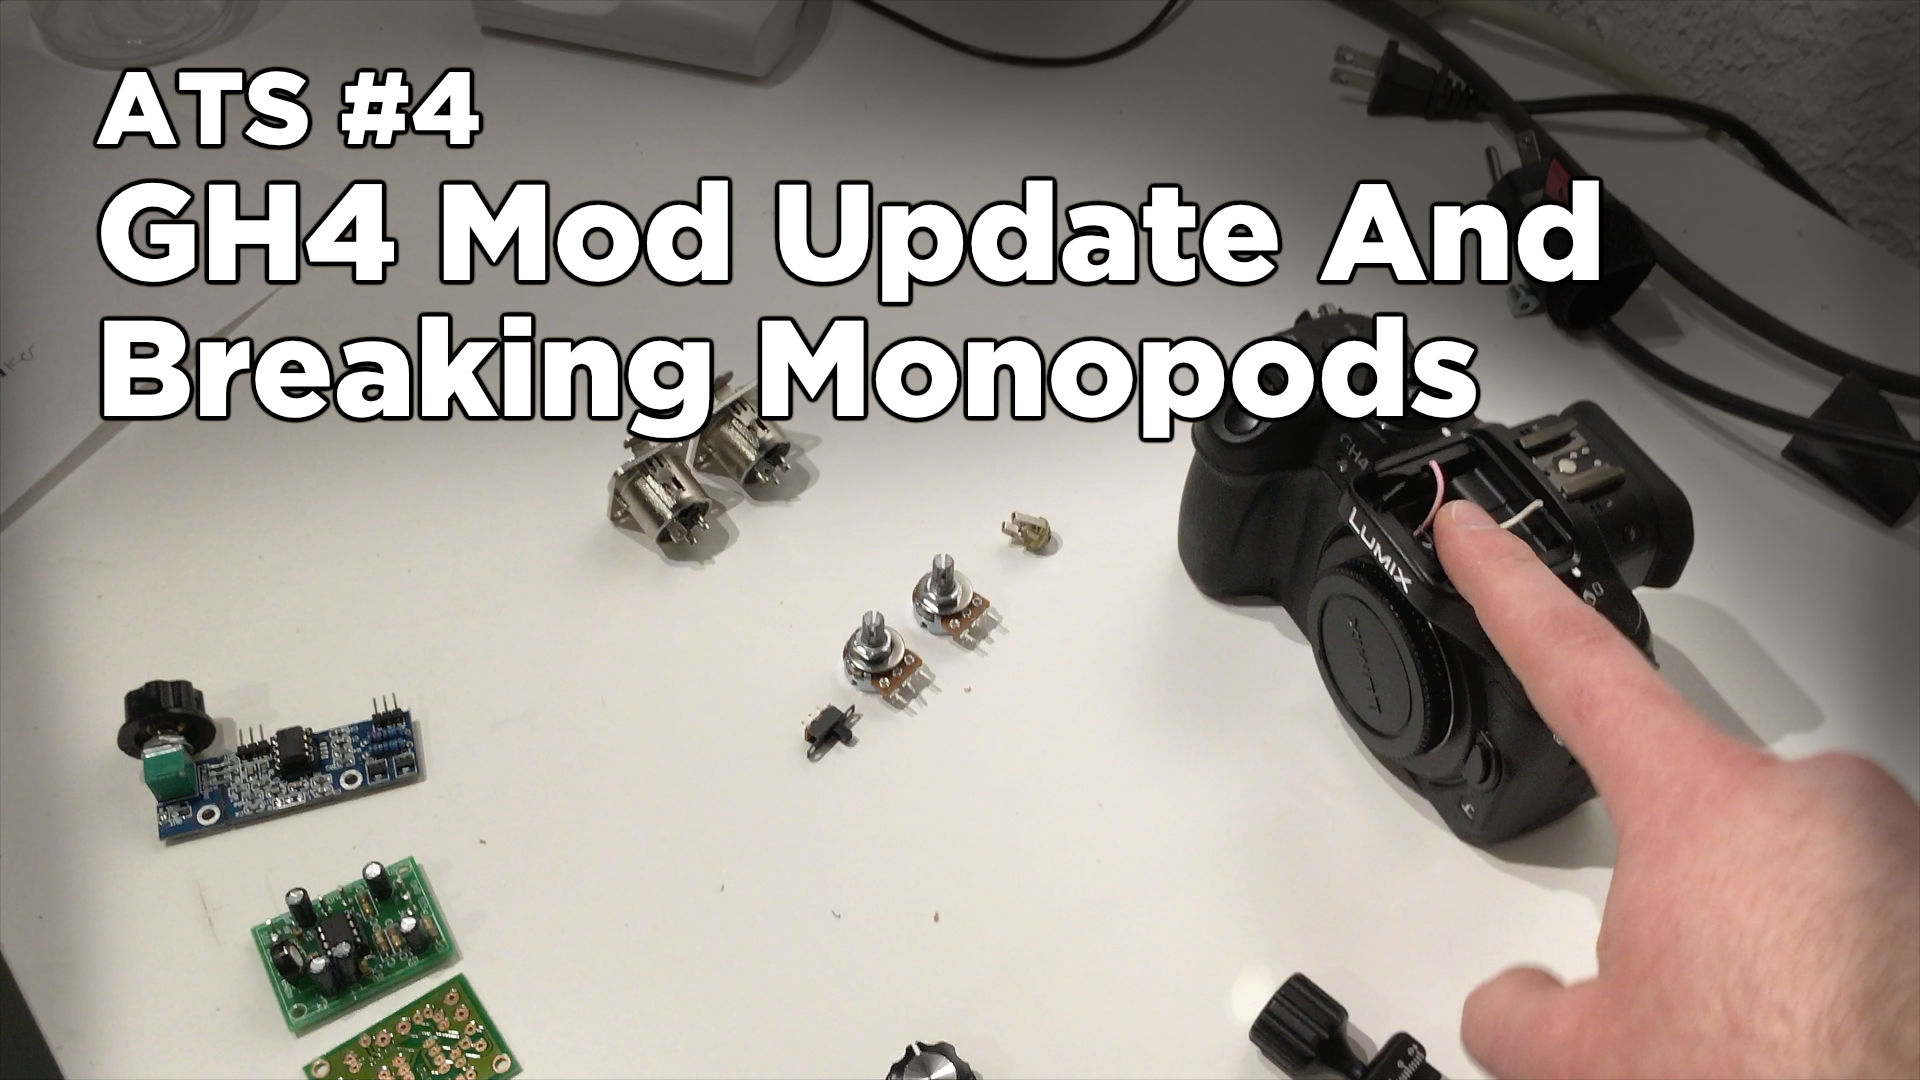 Around the Studio #4: GH4 Mod Update and Breaking Monopods!